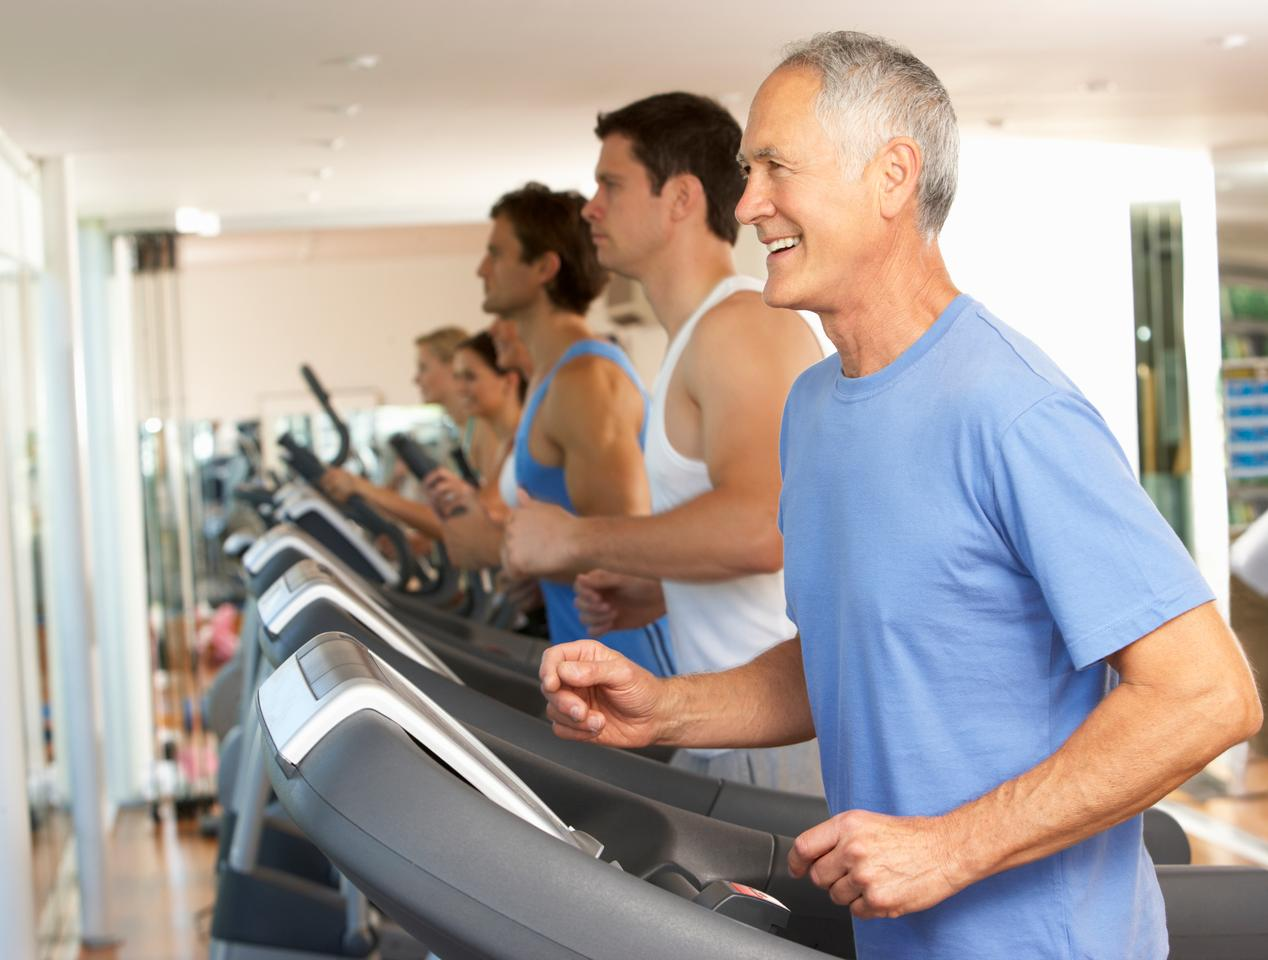 A 12-month study found aerobic exercise improves blood flow to parts of the brain linked with memory